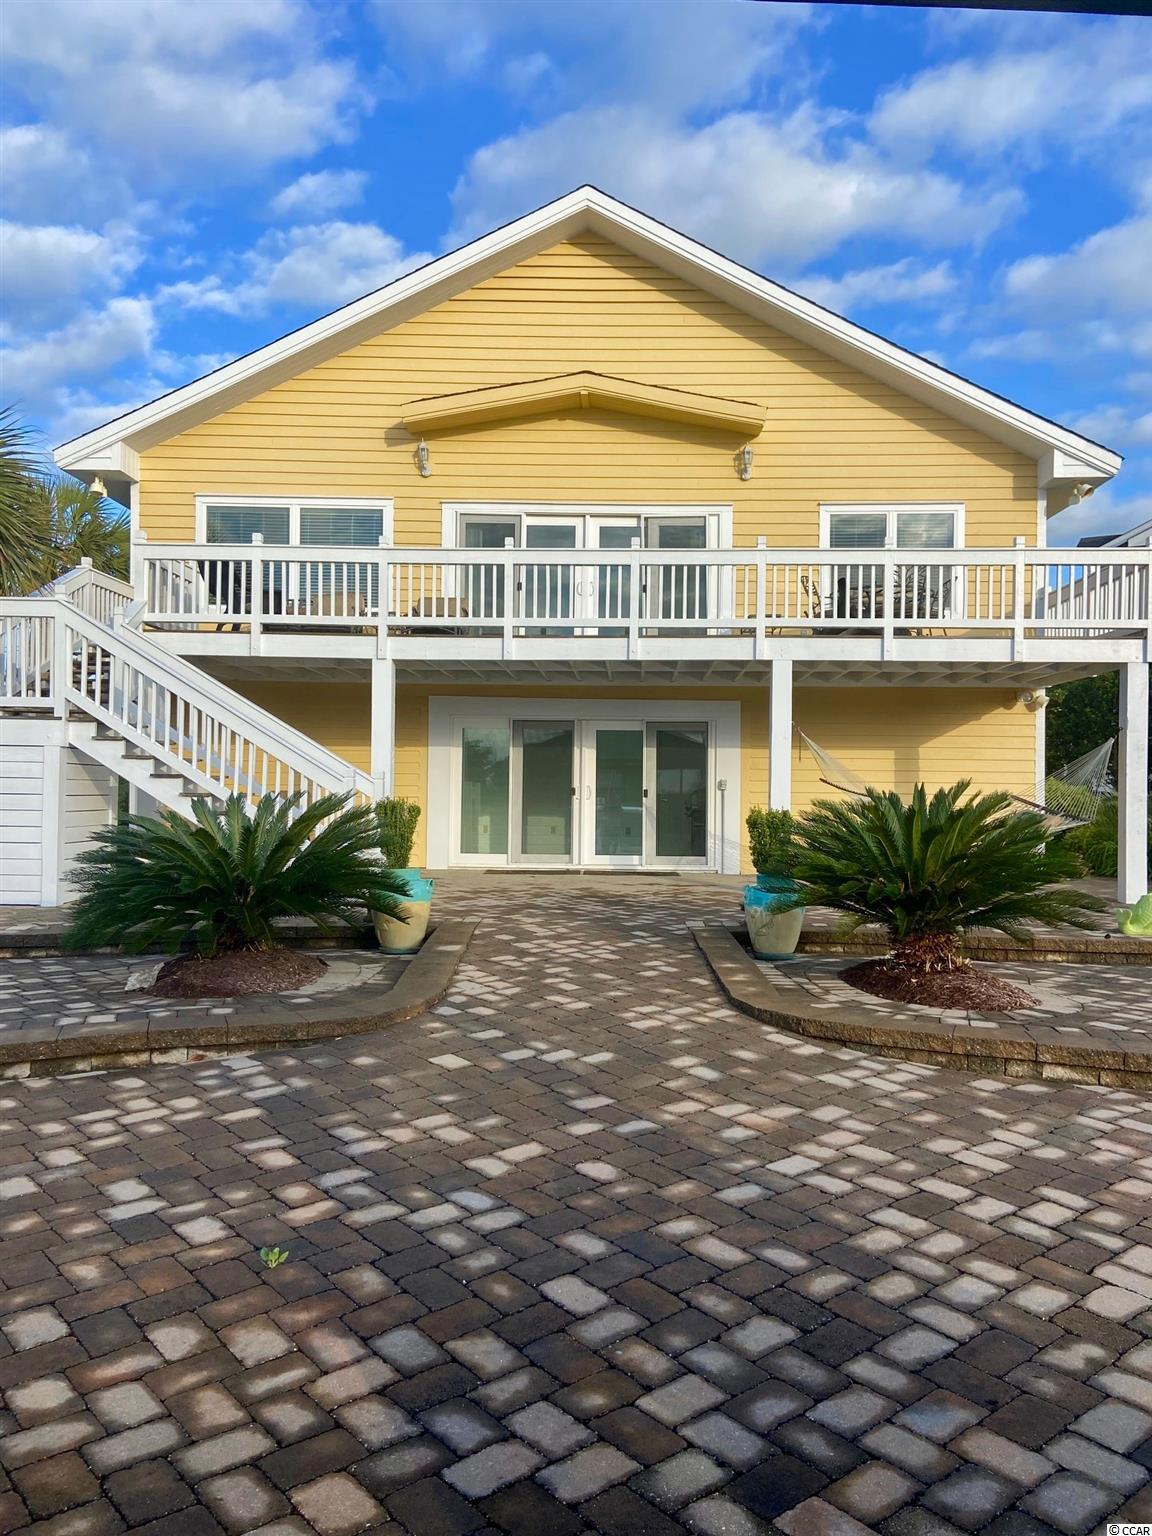 Two story beach home located in Garden City on Oyster Cove canal.  Ocean View, Fixed Dock, Floating Dock, vinyl sea wall, good water at all tides for smaller boats and mid size up to 35ft., fully furnished...interior photos to be added 4/26/21